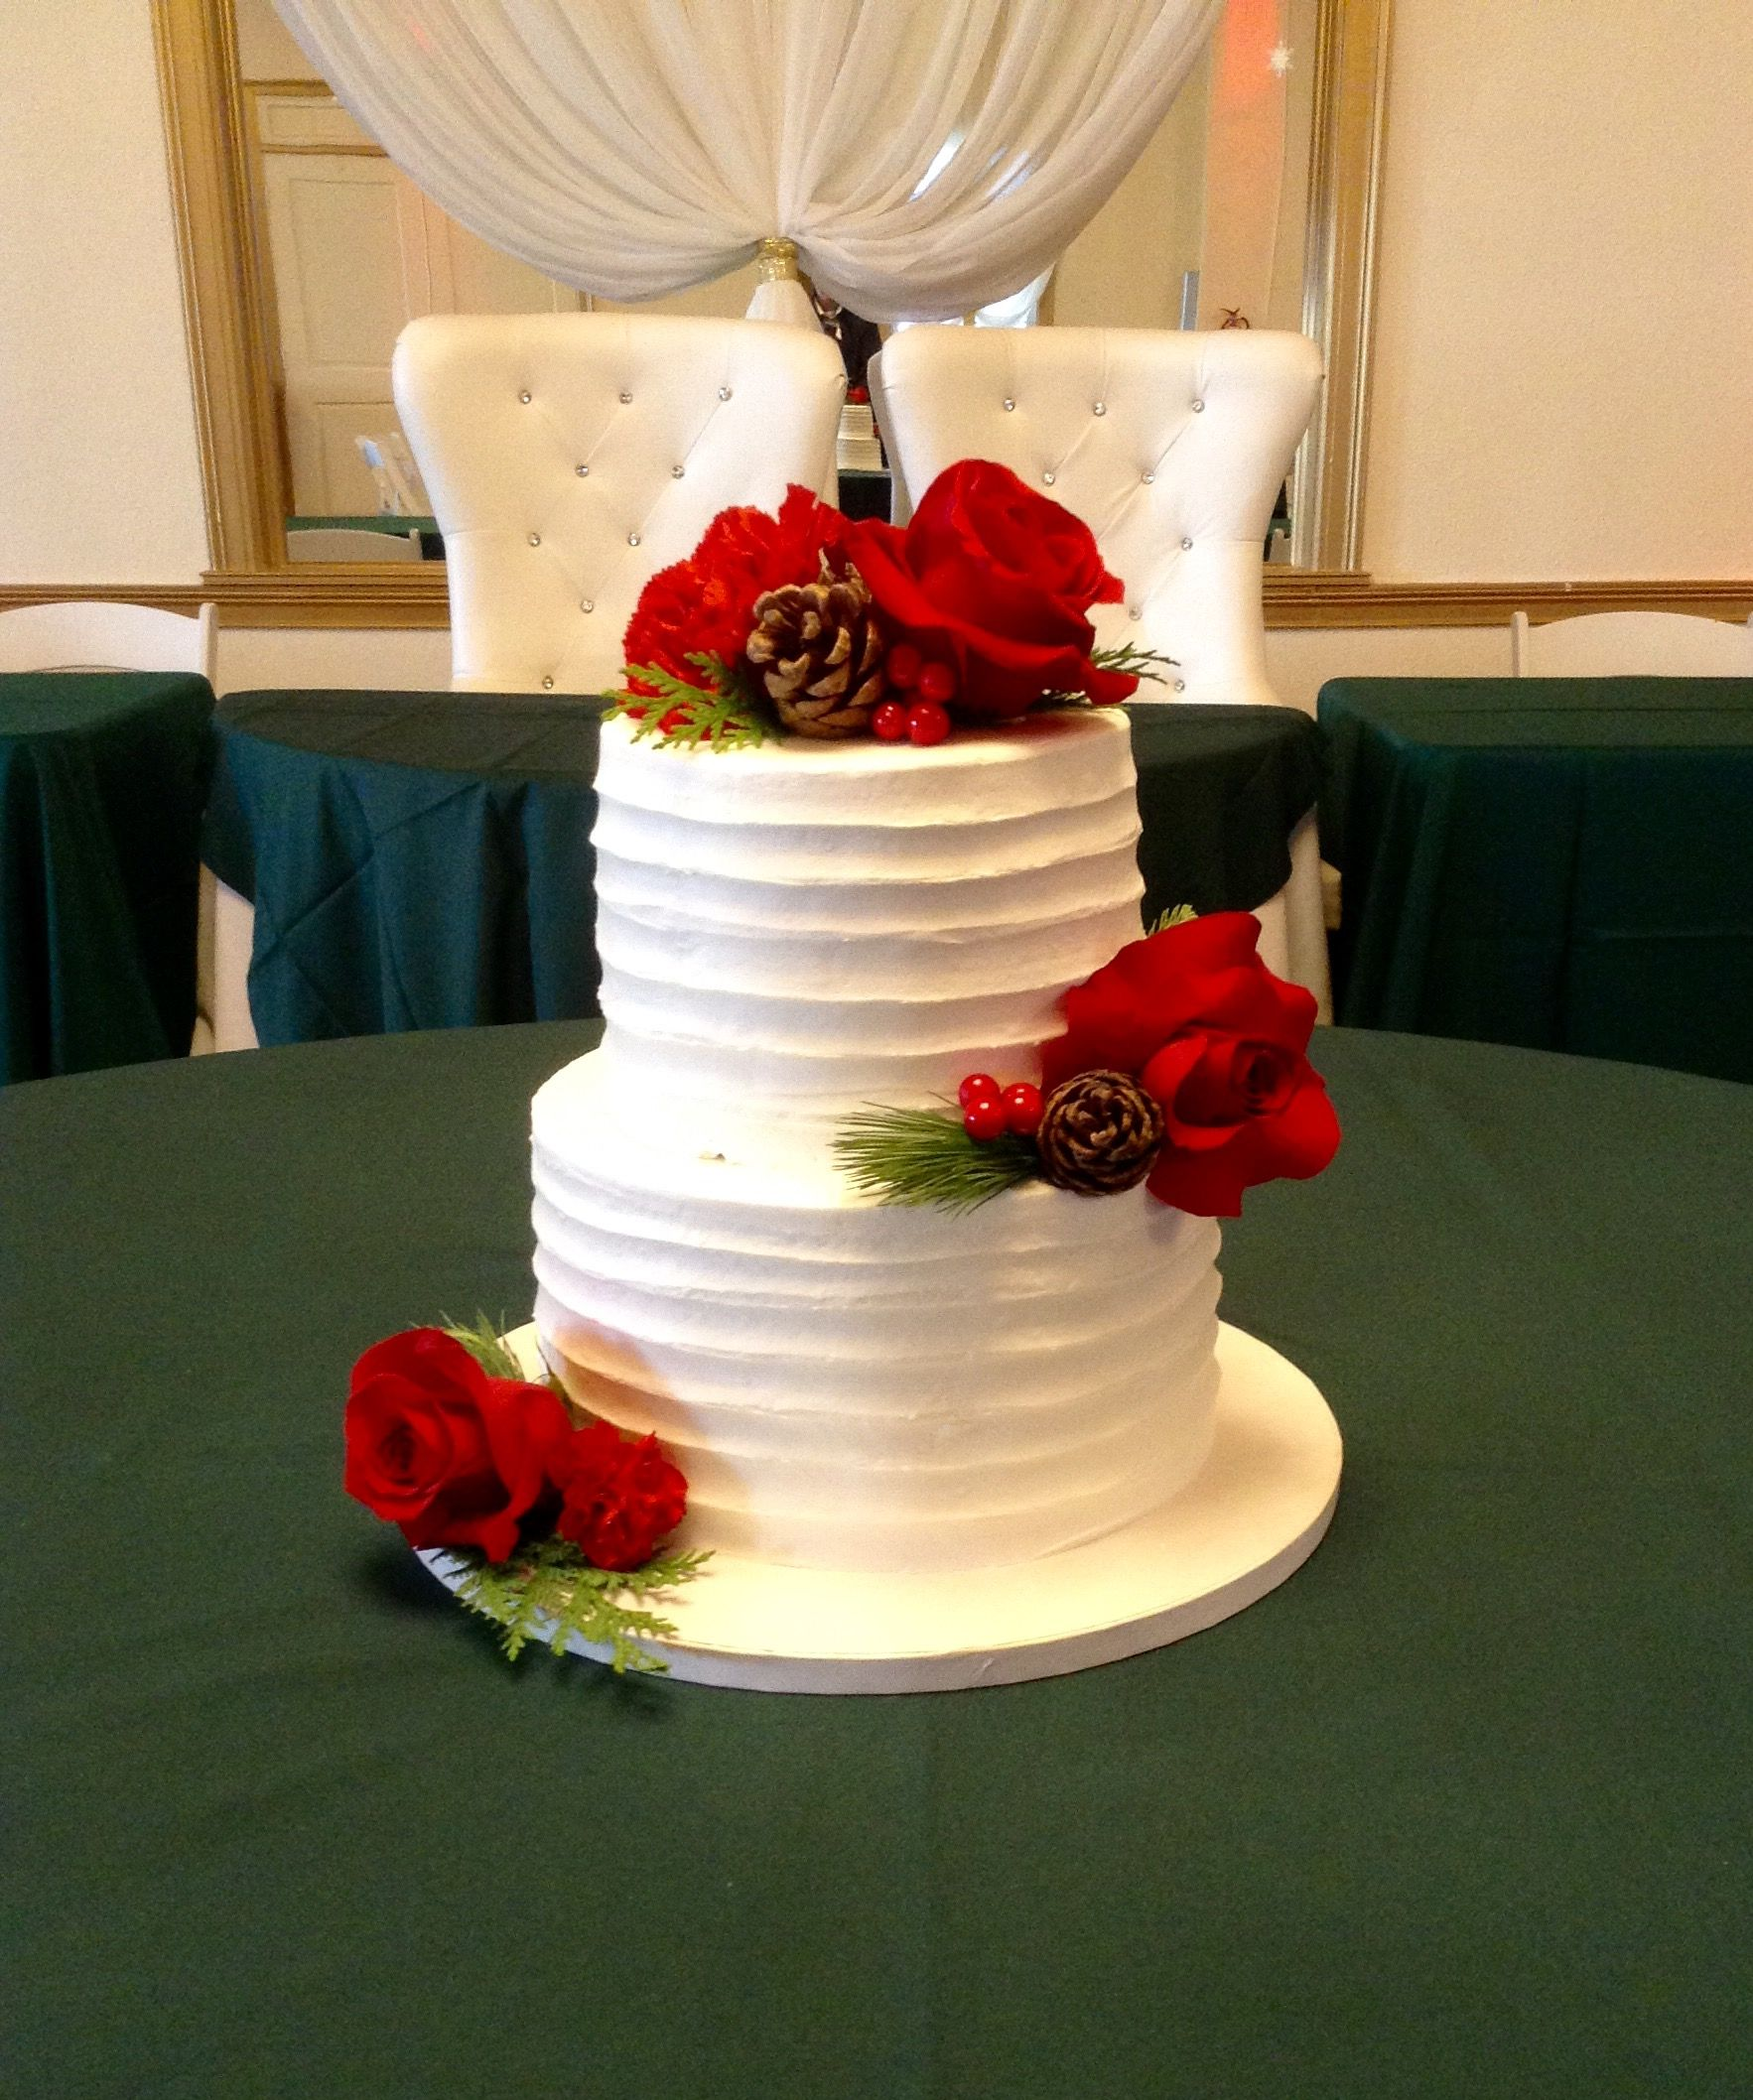 Red Roses And Pine Cones For The Wedding Cake By Nancy At